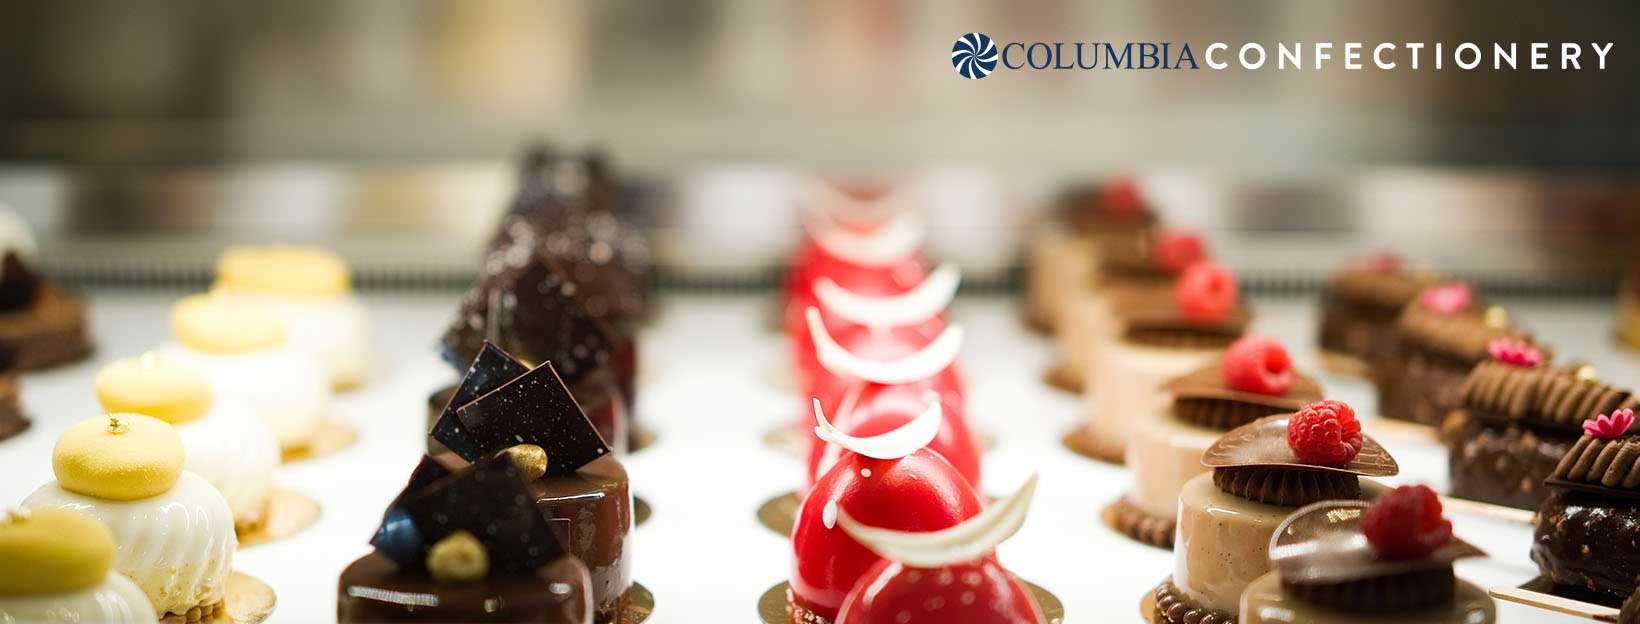 A wide selection of delicious desserts available from Columbia Confectionery